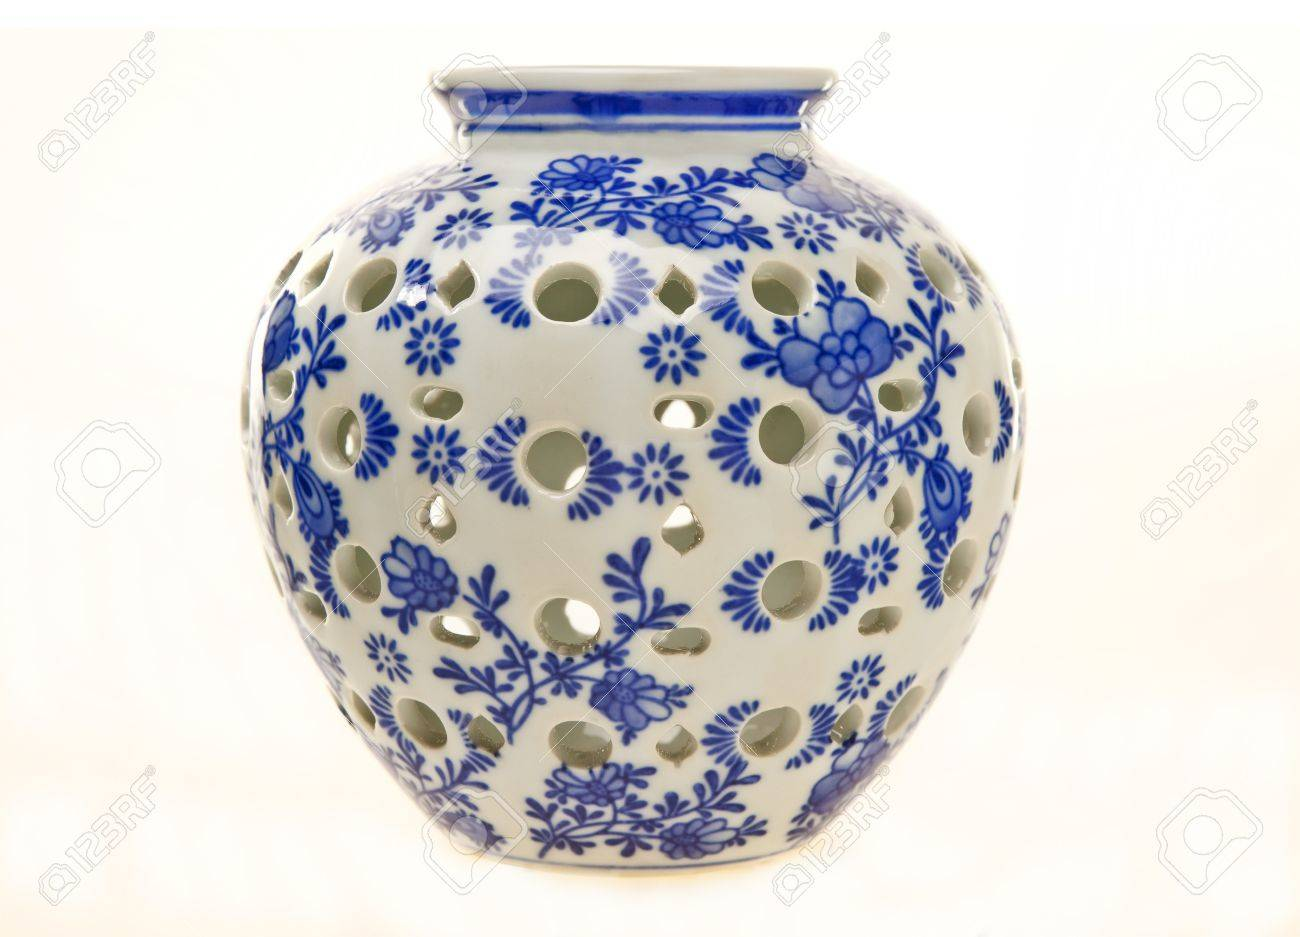 Blue and white pottery - Blue And White Pottery Jar Stock Photo 11701203